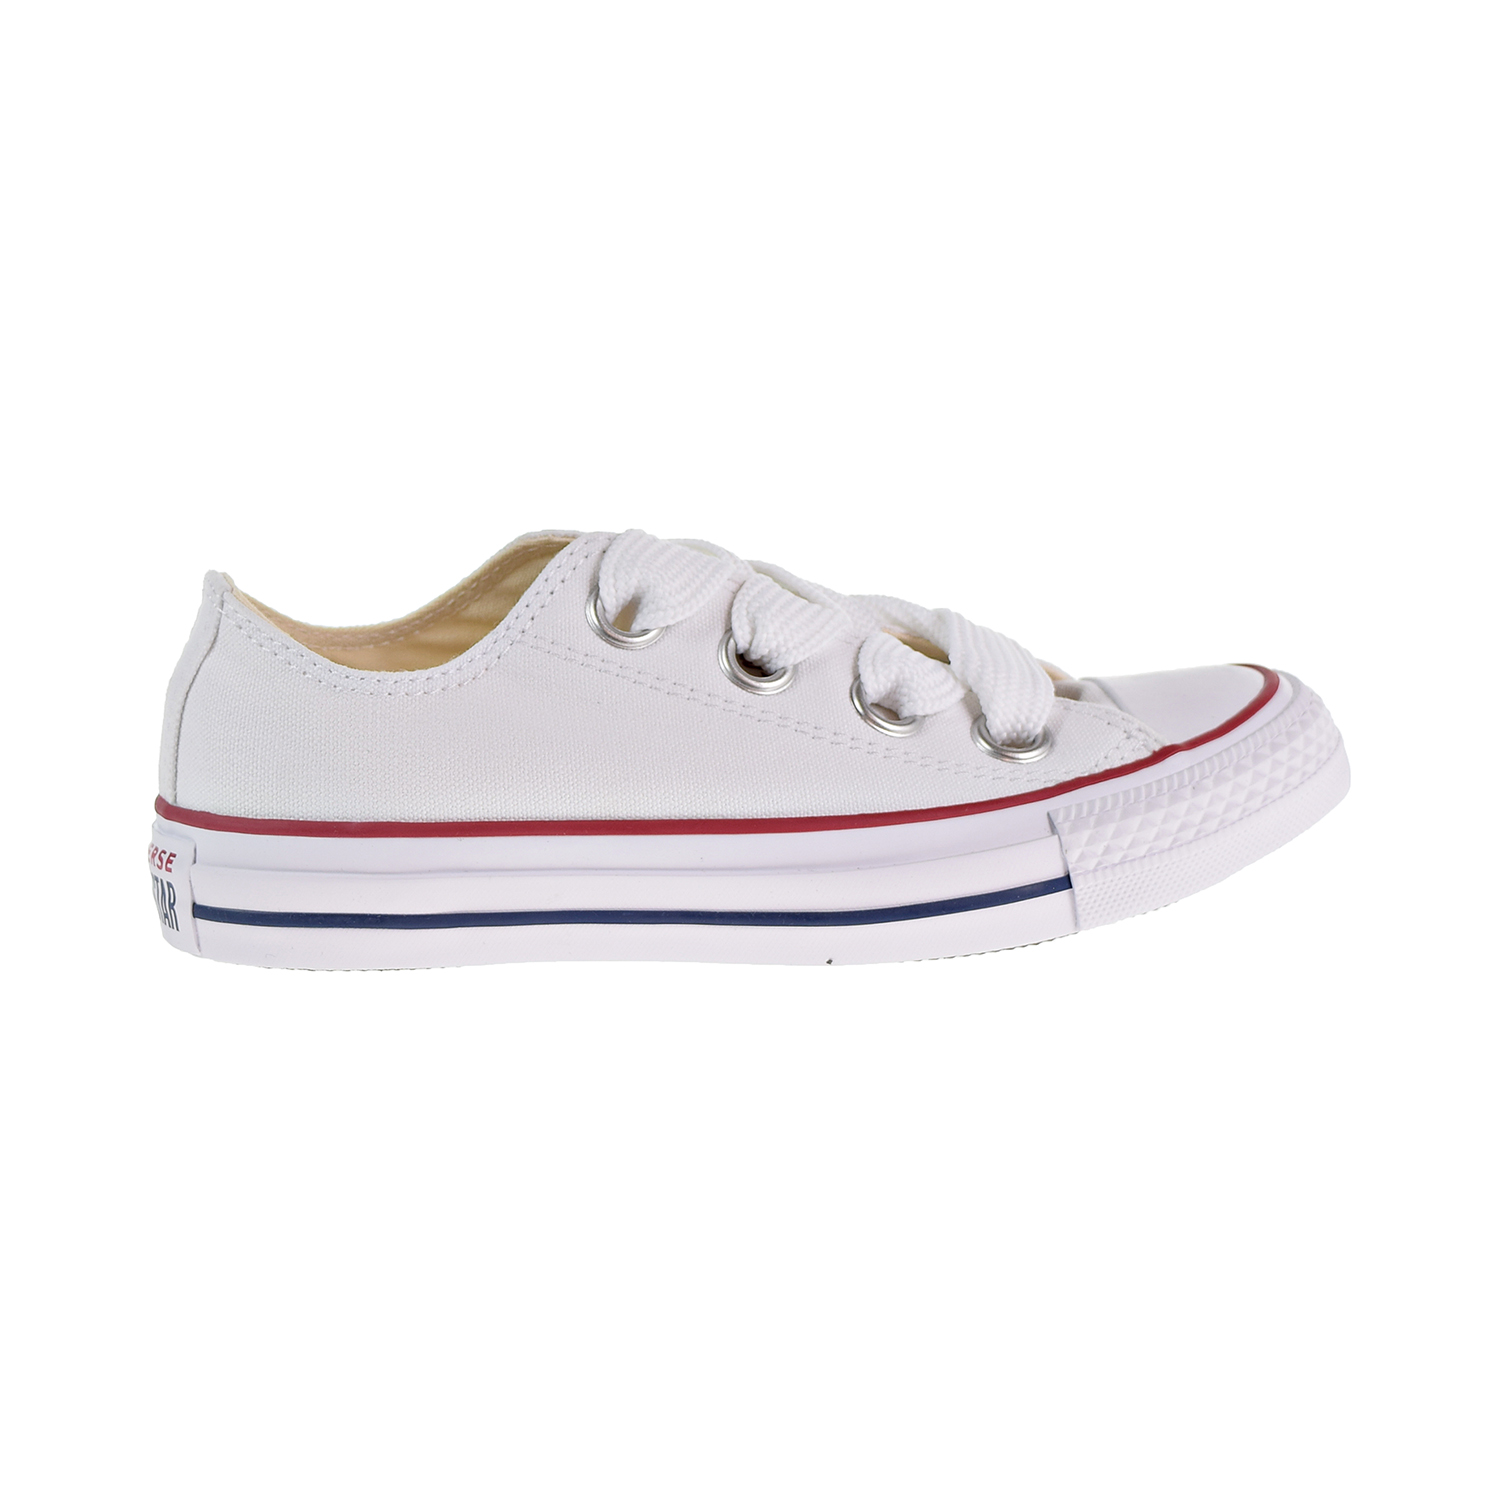 d5d9cc00a74c2d Details about Converse Chuck Taylor All Star Big Eyelets Ox Women s Shoes  White Blue 559935c